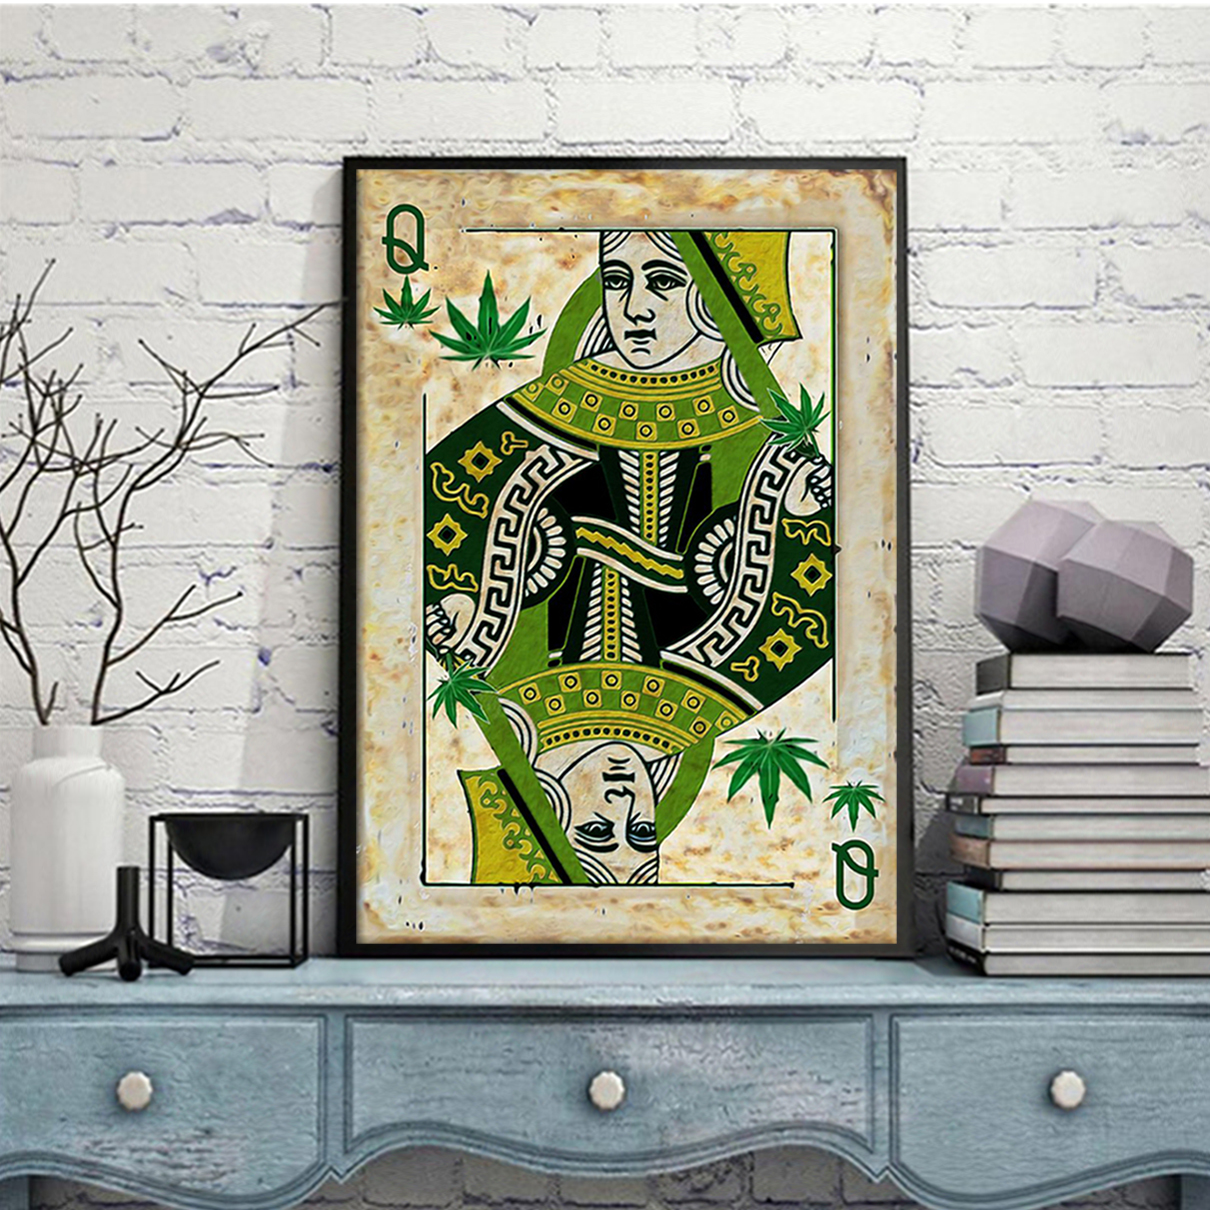 Queen card weed cannabis poster A3